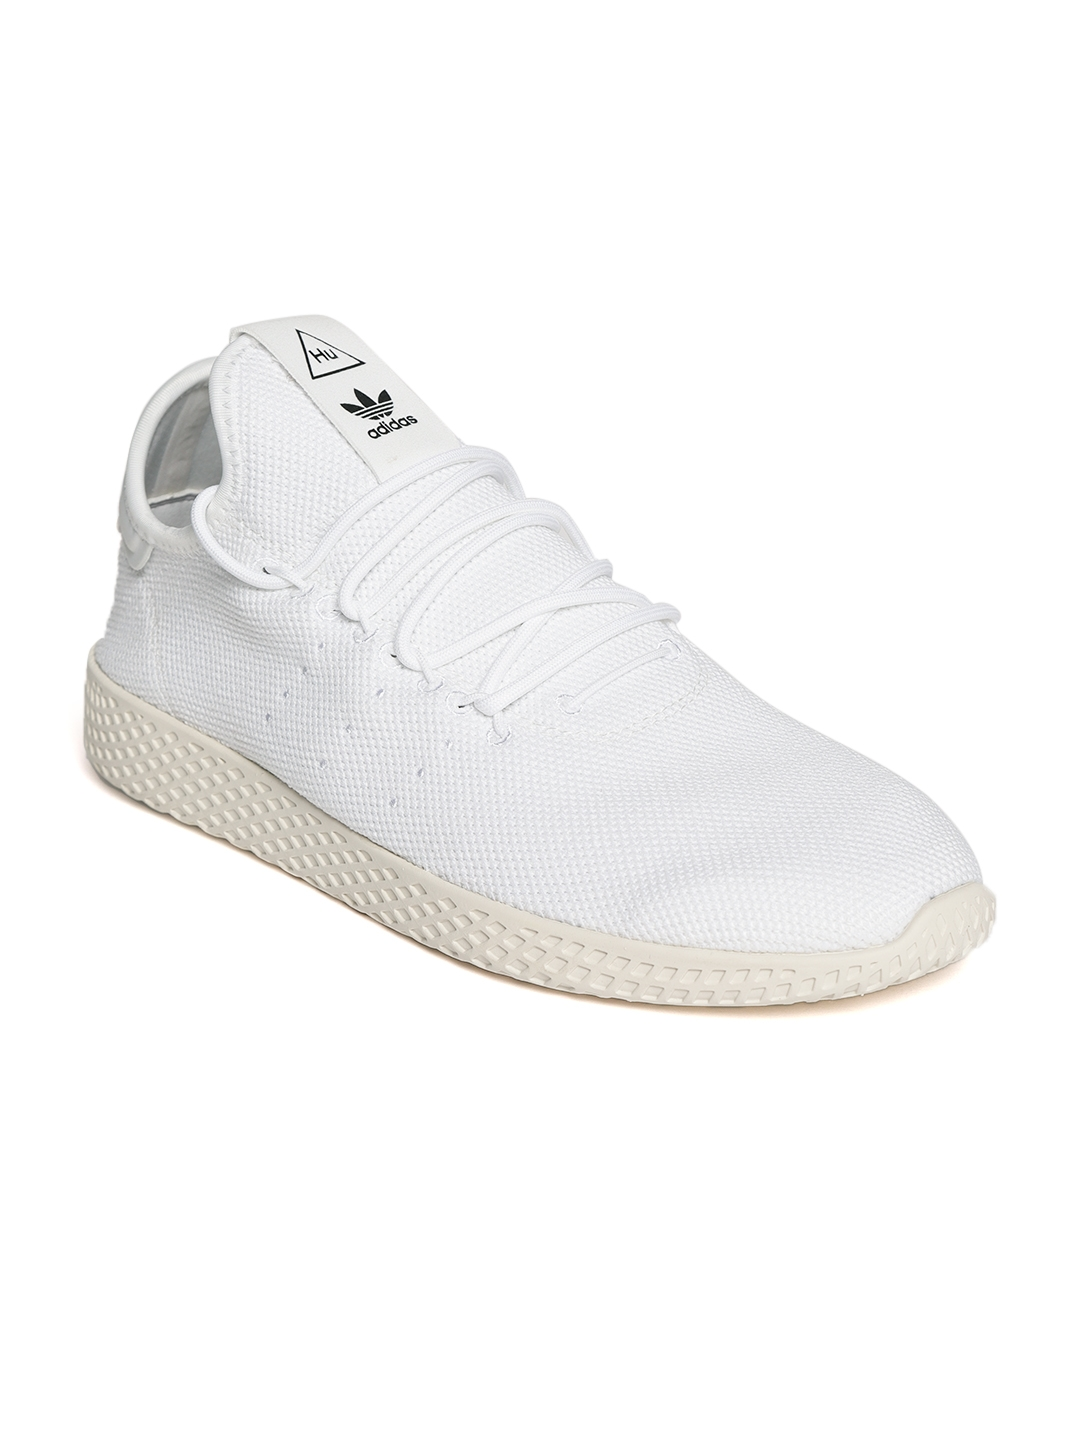 f5d3a812457b52 Buy ADIDAS Originals Men White Pharrell Williams HU Tennis Shoes ...